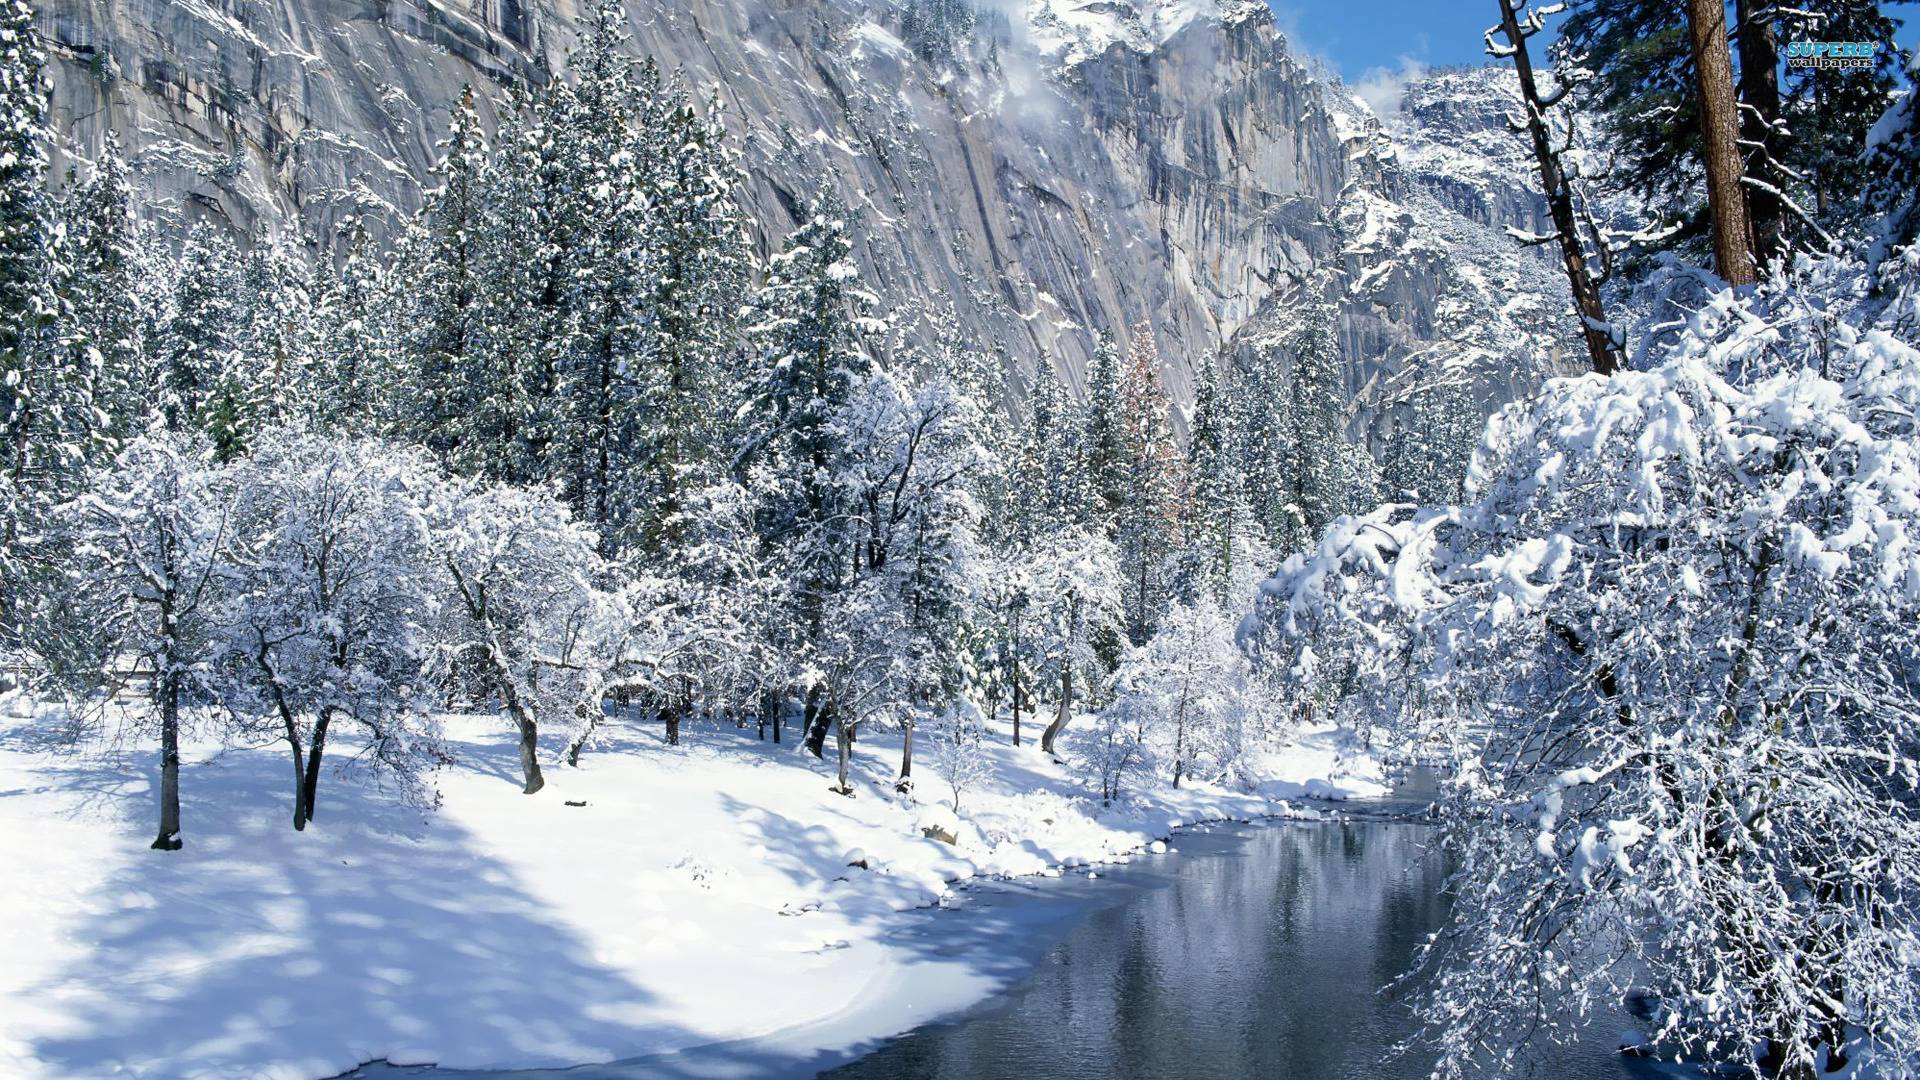 Snowy mountains wallpapers wallpaper cave - Snowy wallpaper ...